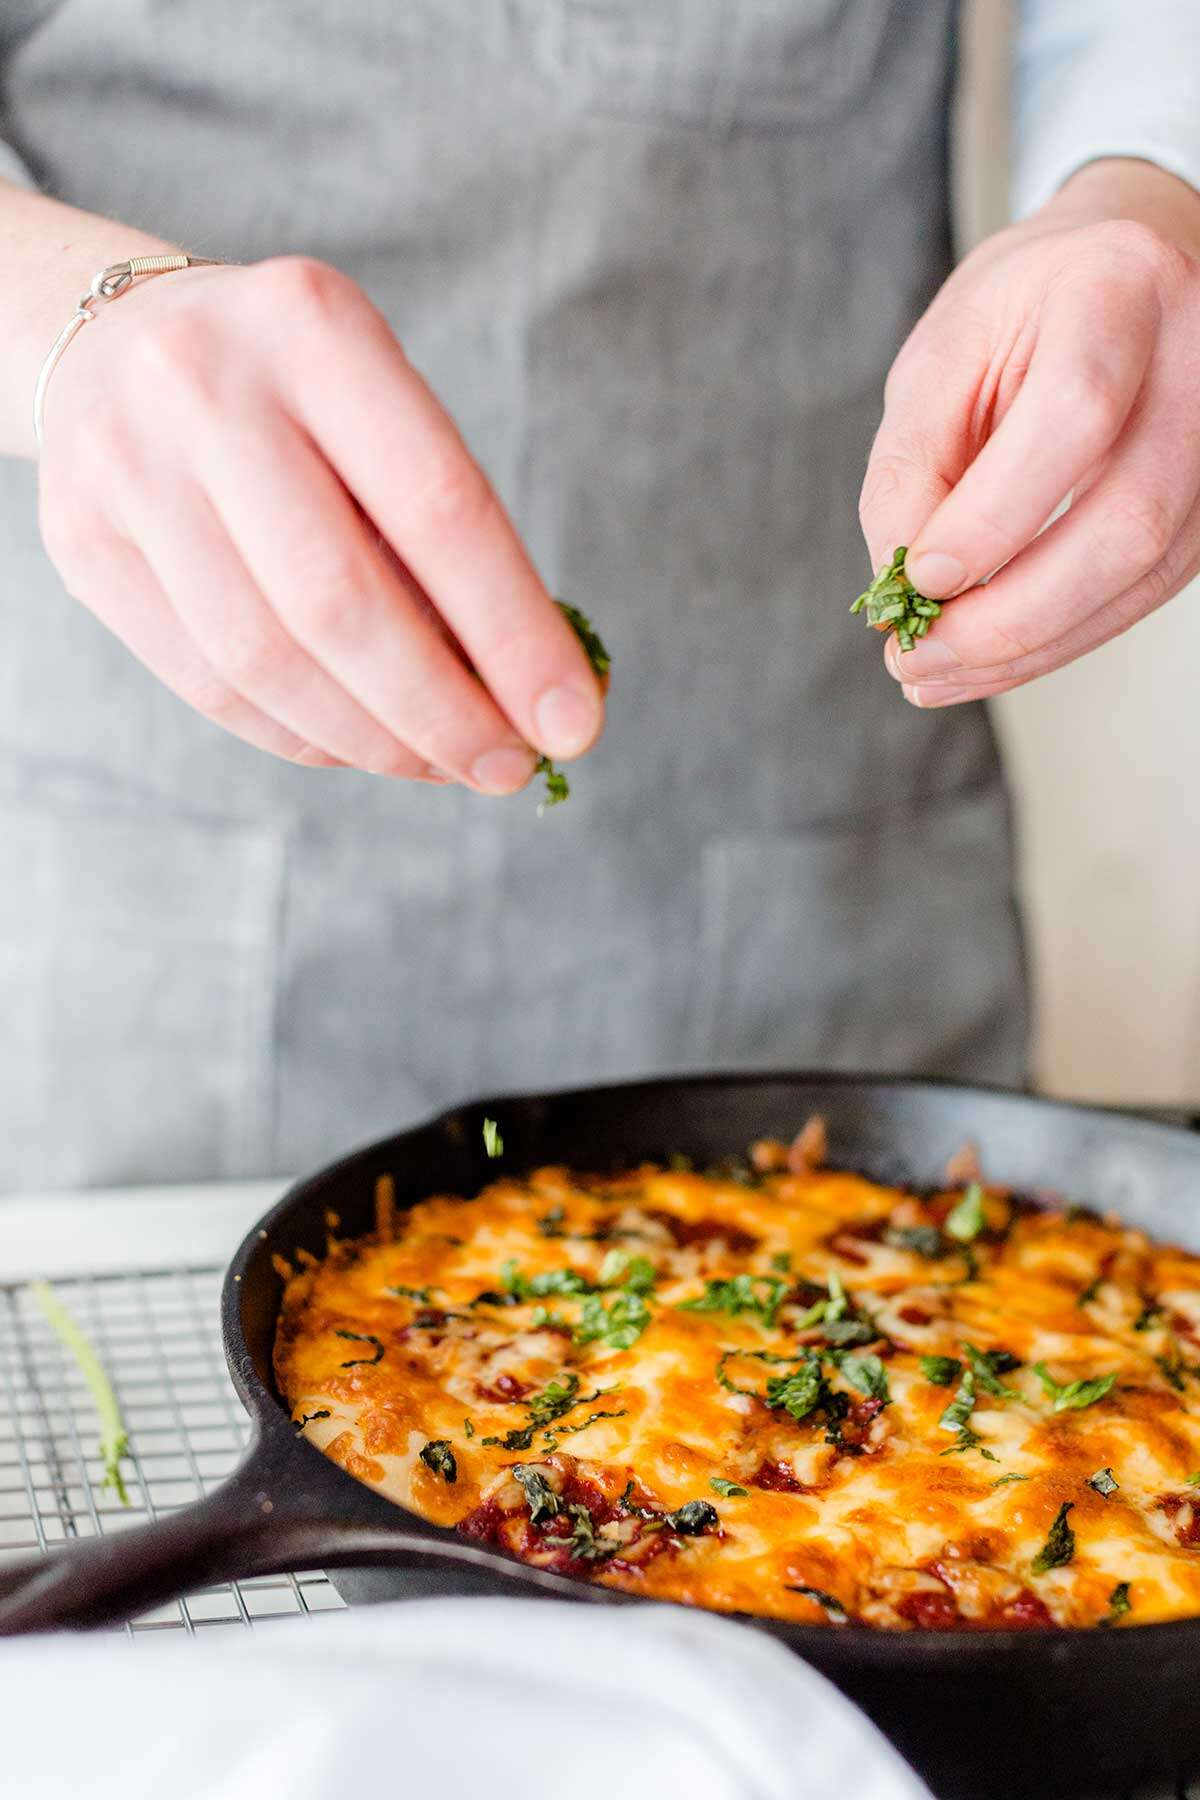 A baker sprinkling fresh herbs on top of a gluten-free pan pizza baked in a cast iron pan